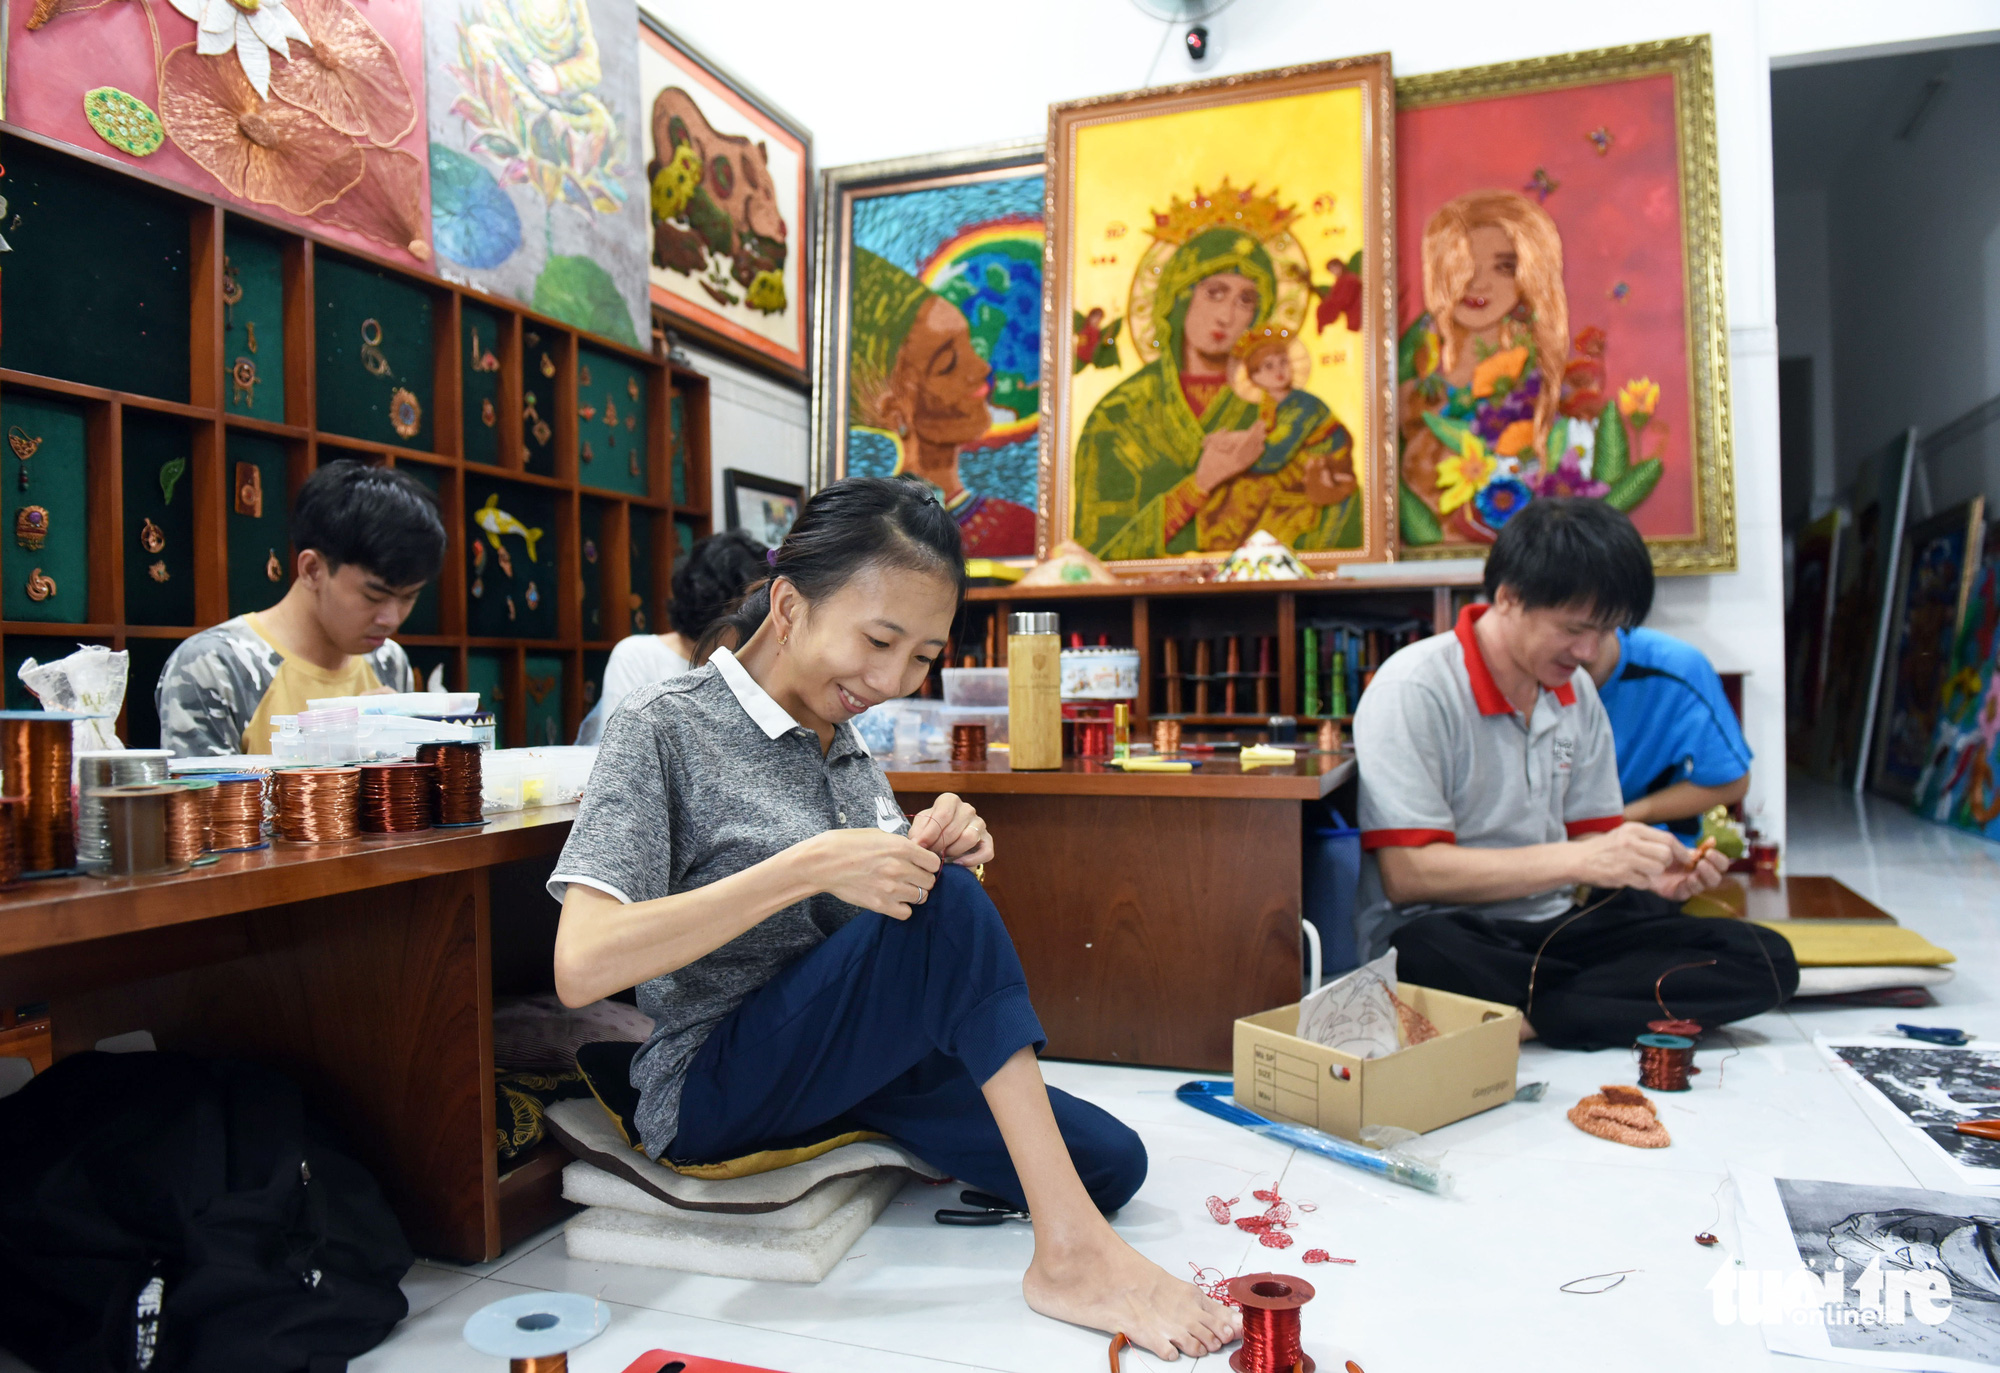 Duong Thi My Huyen (left) from Quang Ngai Province, a disabled artist with muscular atrophy, works on a piece at Nguyen Thi Nhat Phuong's copper wire art class in Ho Chi Minh City, Vietnam. Photo: Duyen Phan / Tuoi Tre